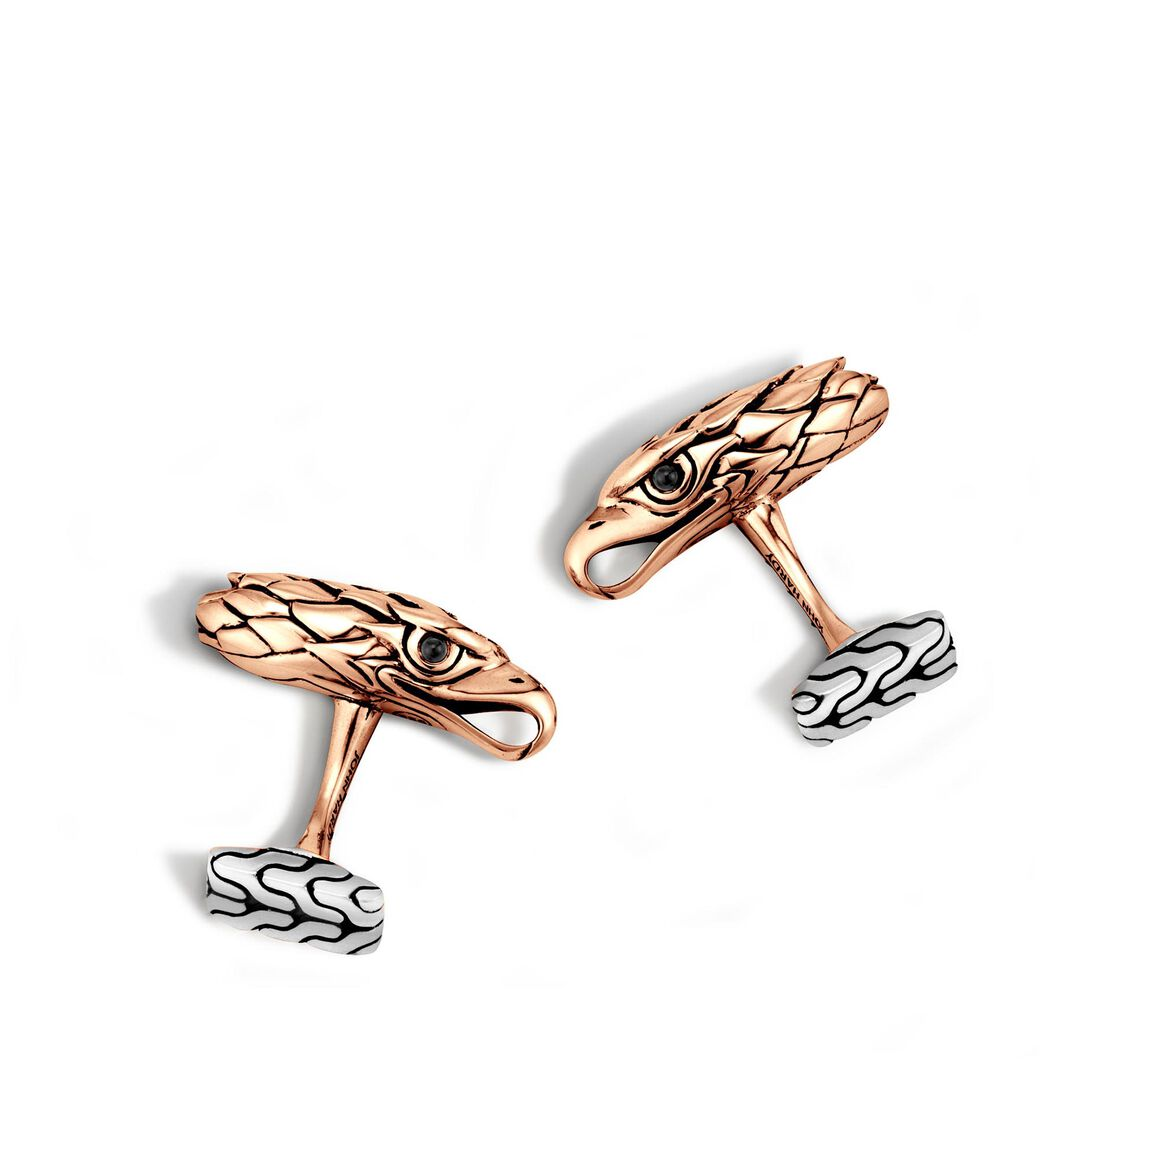 Legends Eagle Head Cufflinks in Silver and Bronze